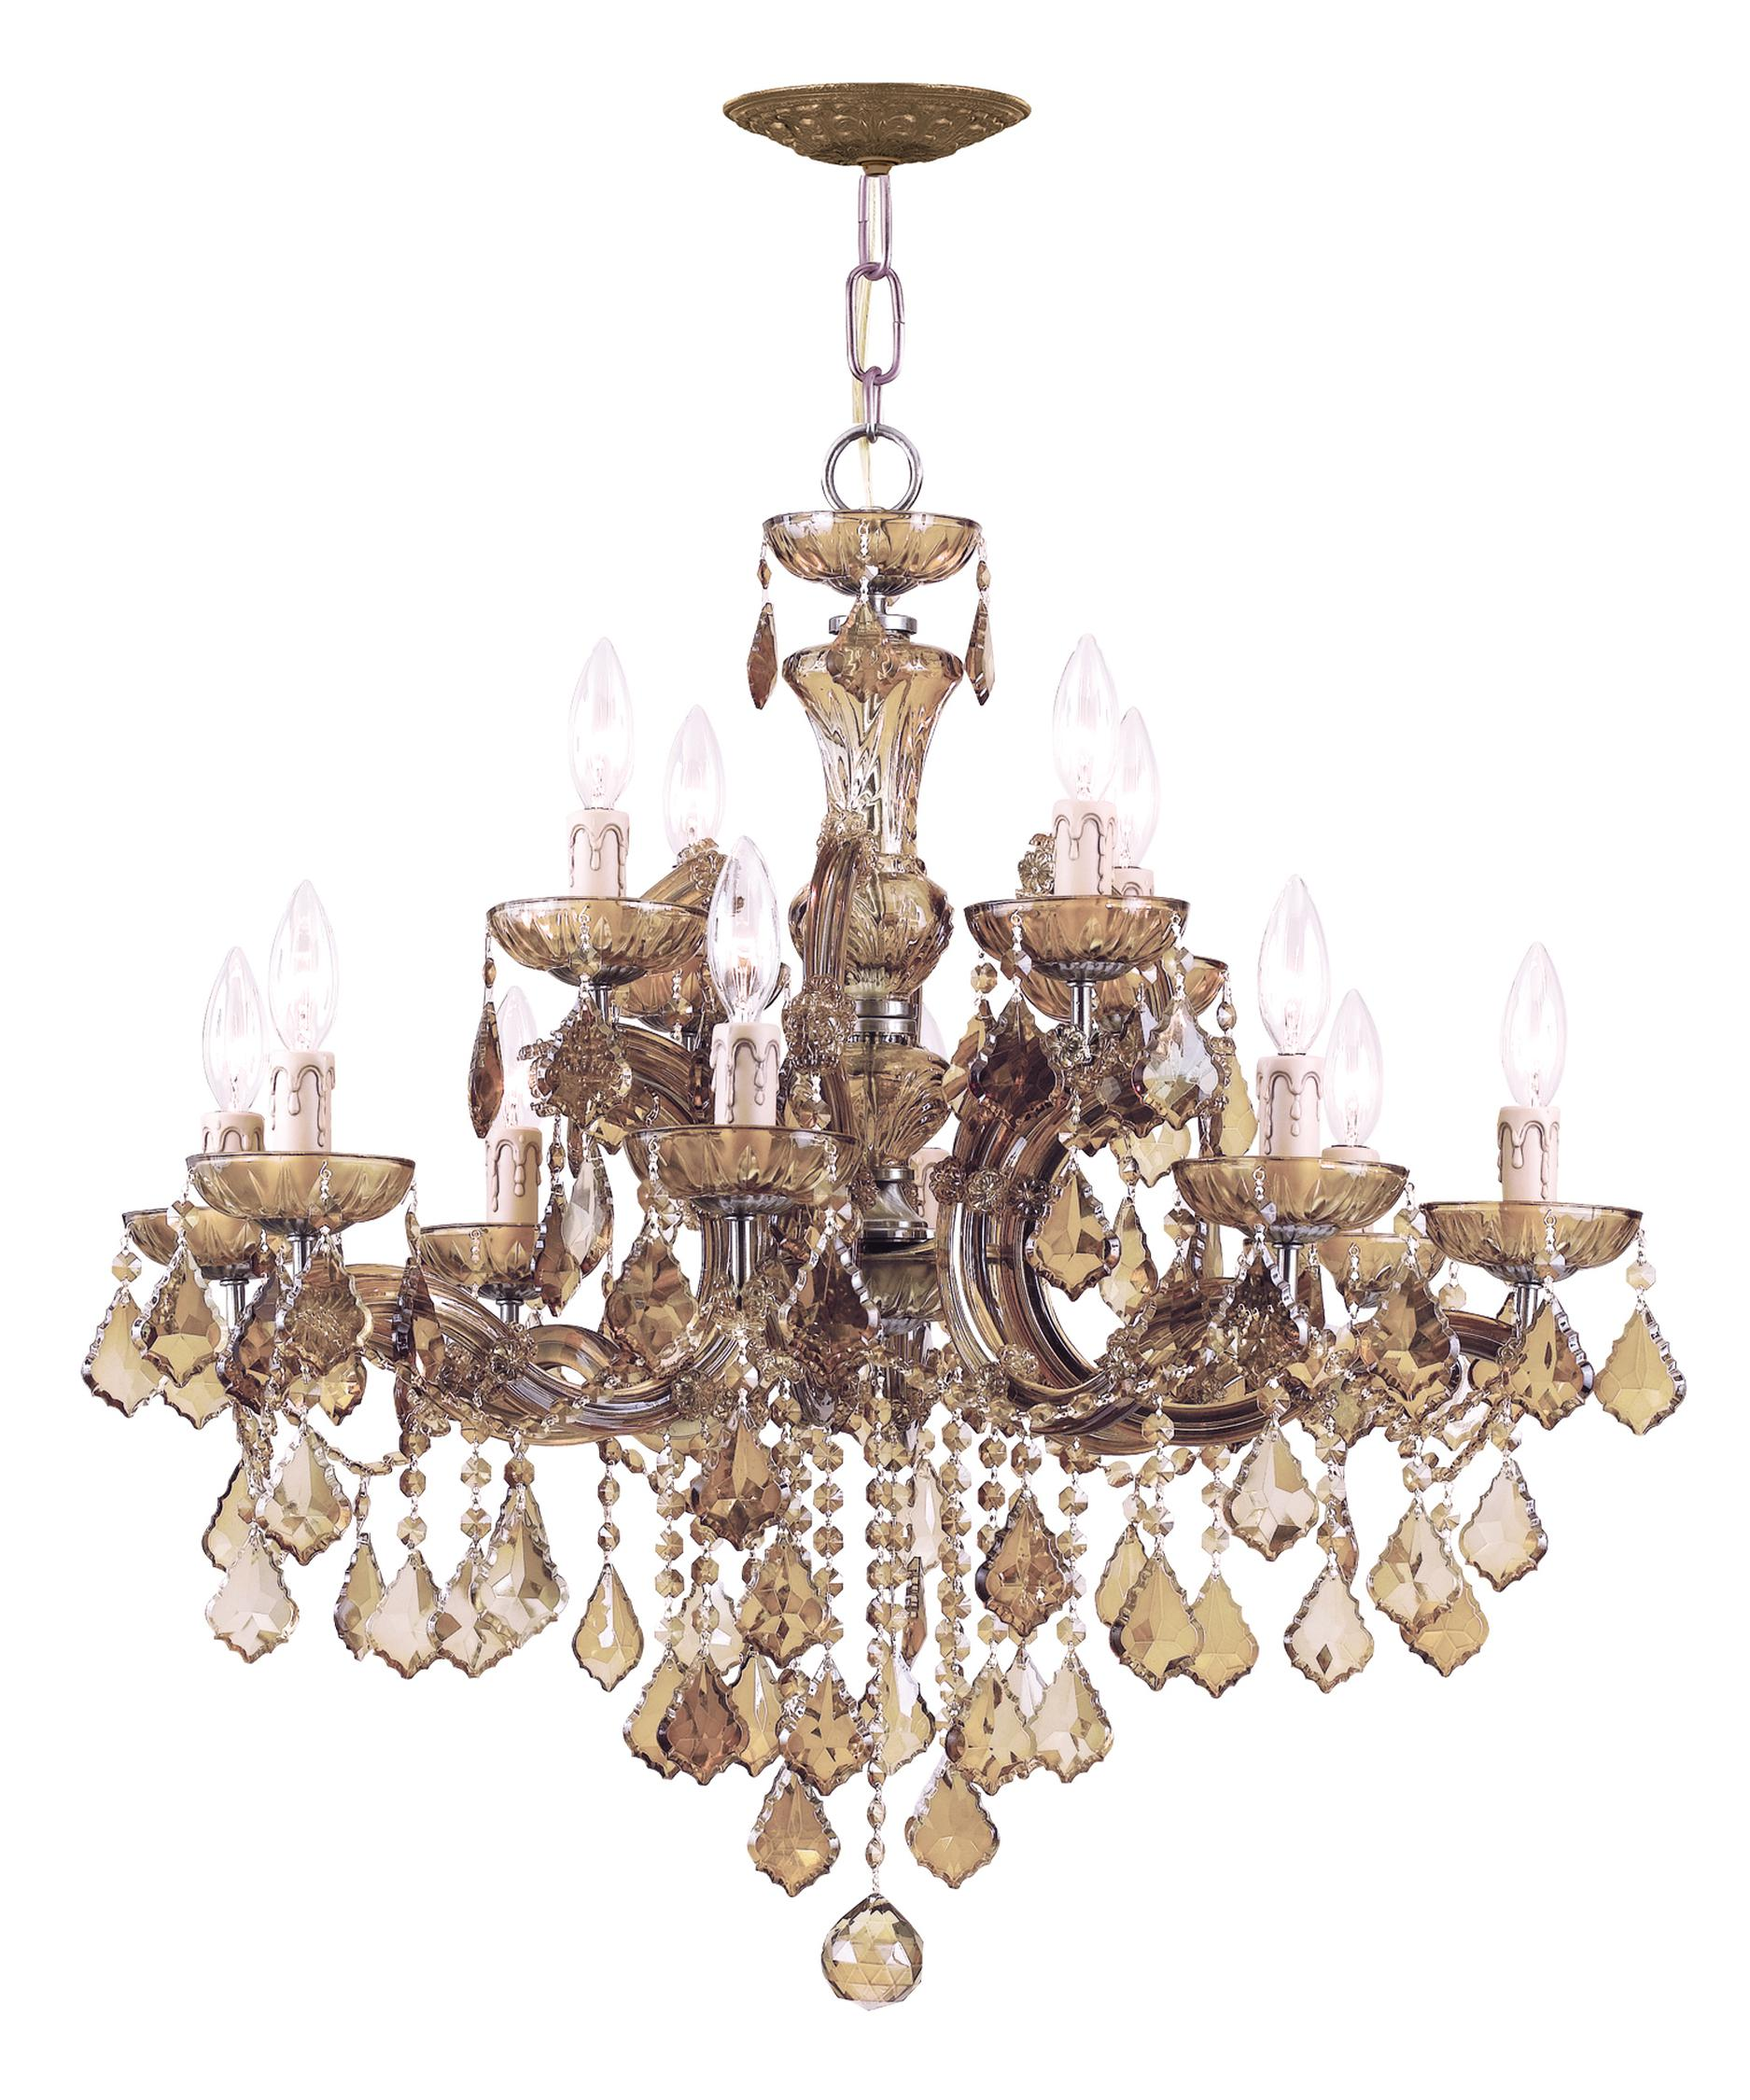 Crystorama Maria Theresa 30 Inch Wide 12 Light Chandelier – Crystorama Chandeliers